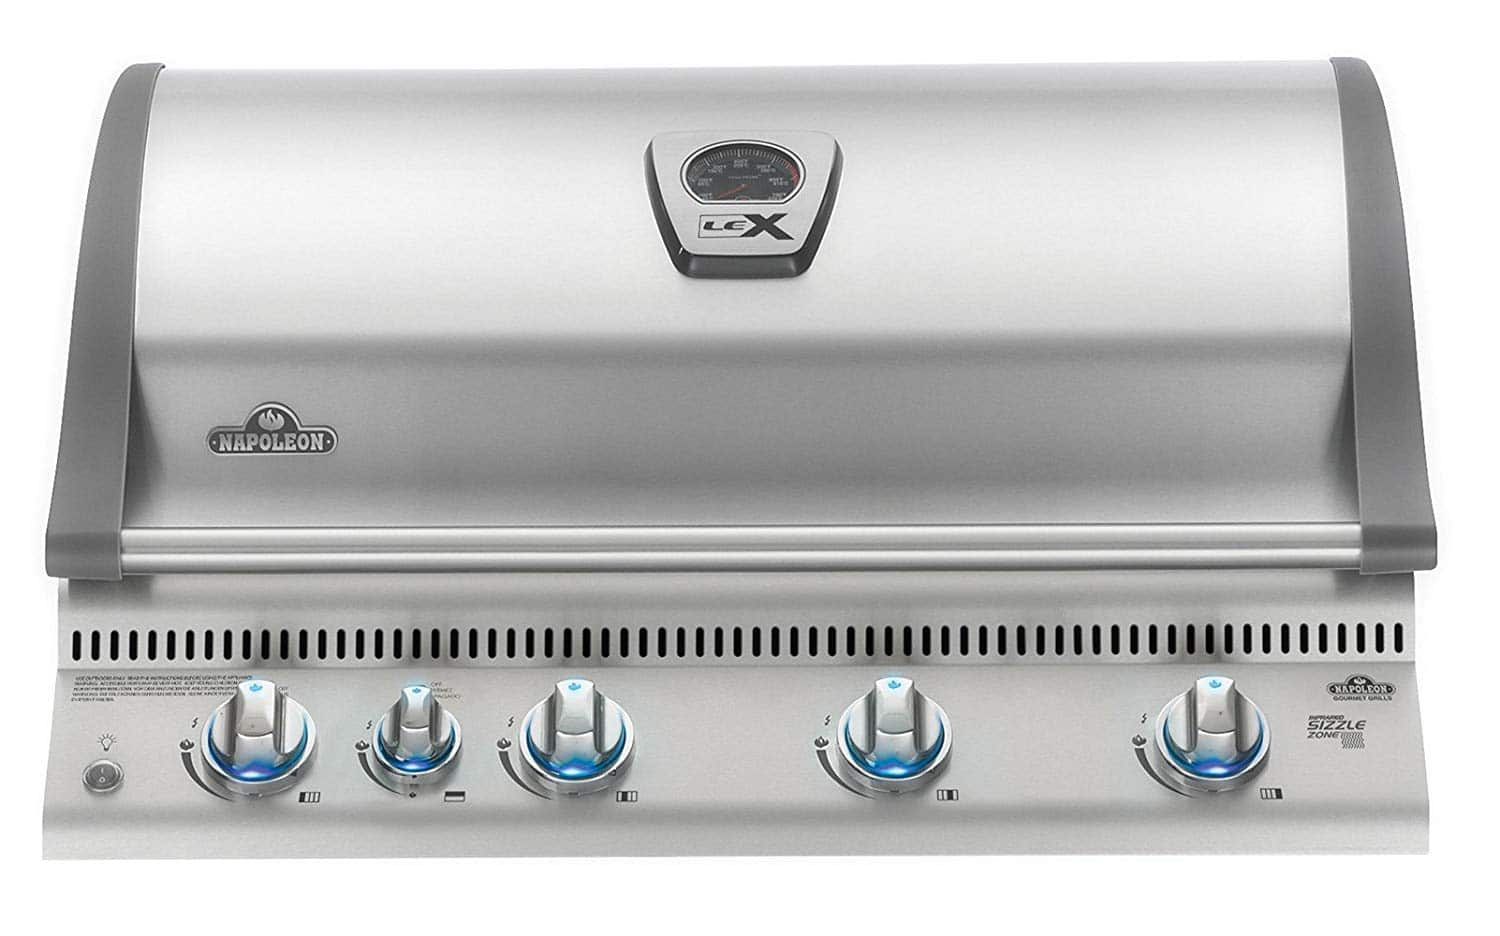 Napoleon LEX 605 Grill Built In